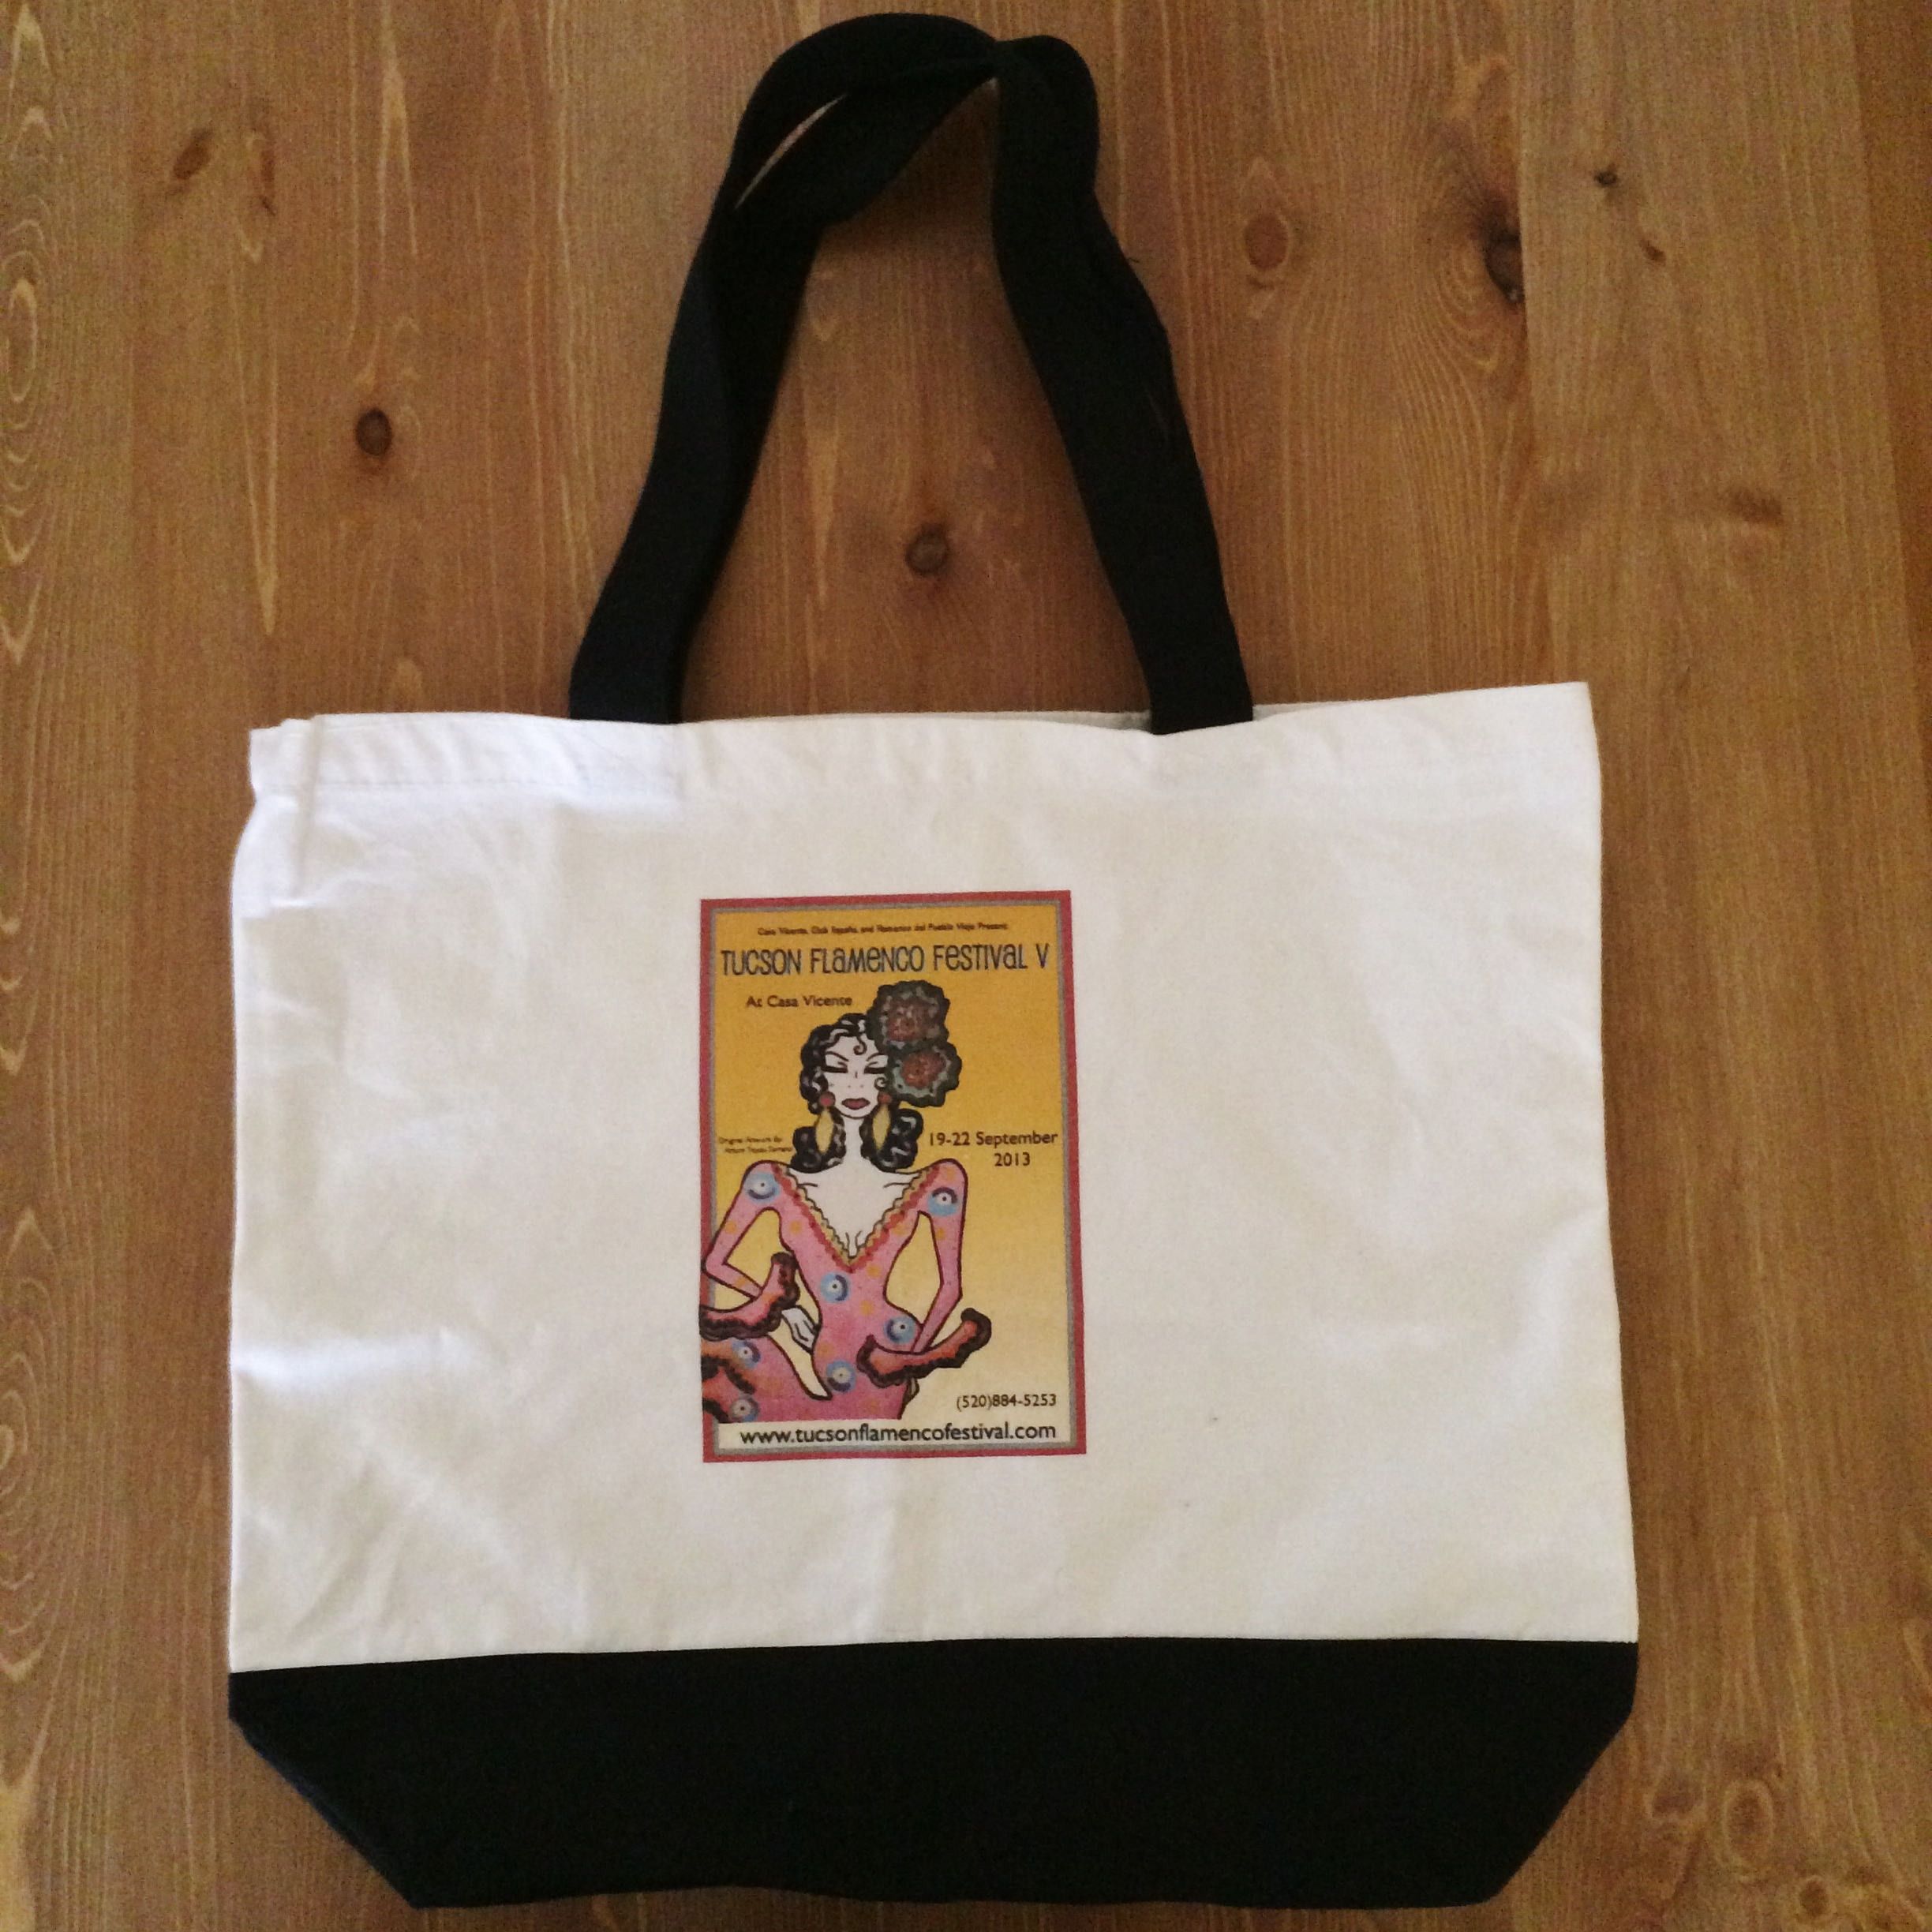 Tote Bag with Poster Image